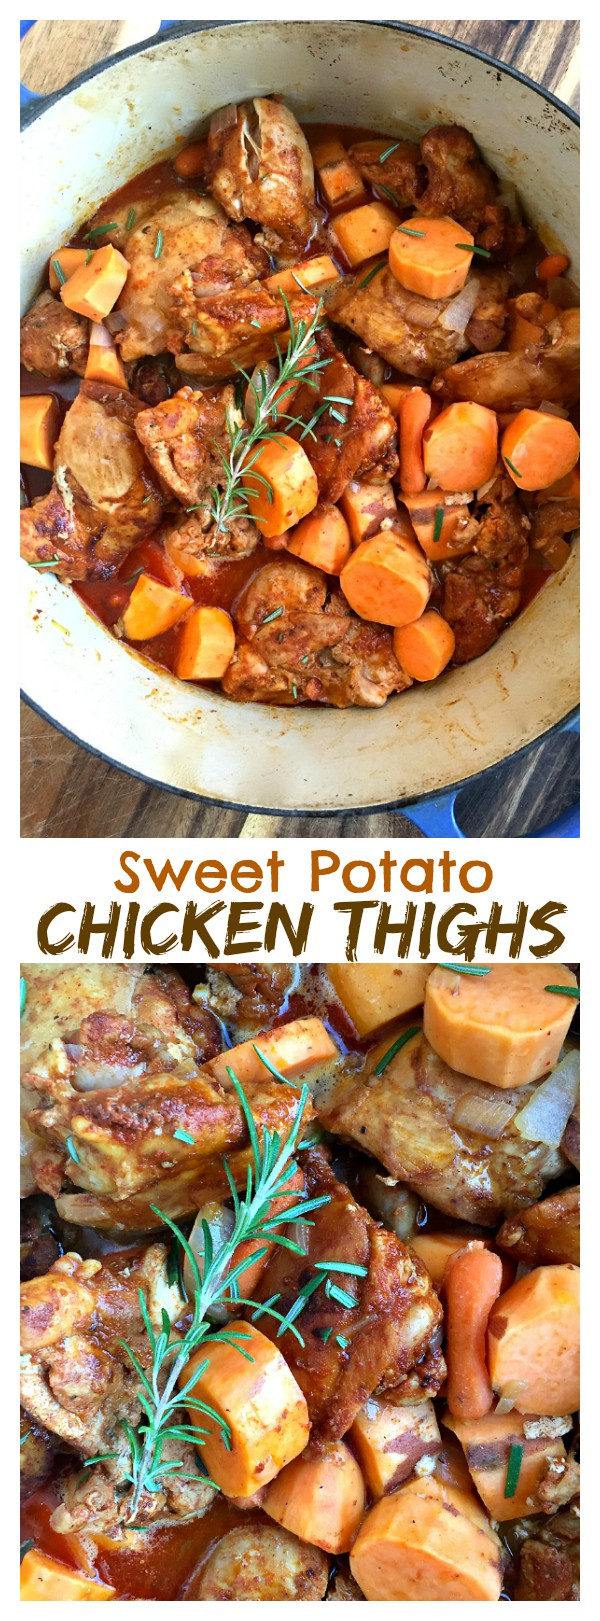 Healthy, easy dinner: Paprika Sweet Potato Chicken Thighs